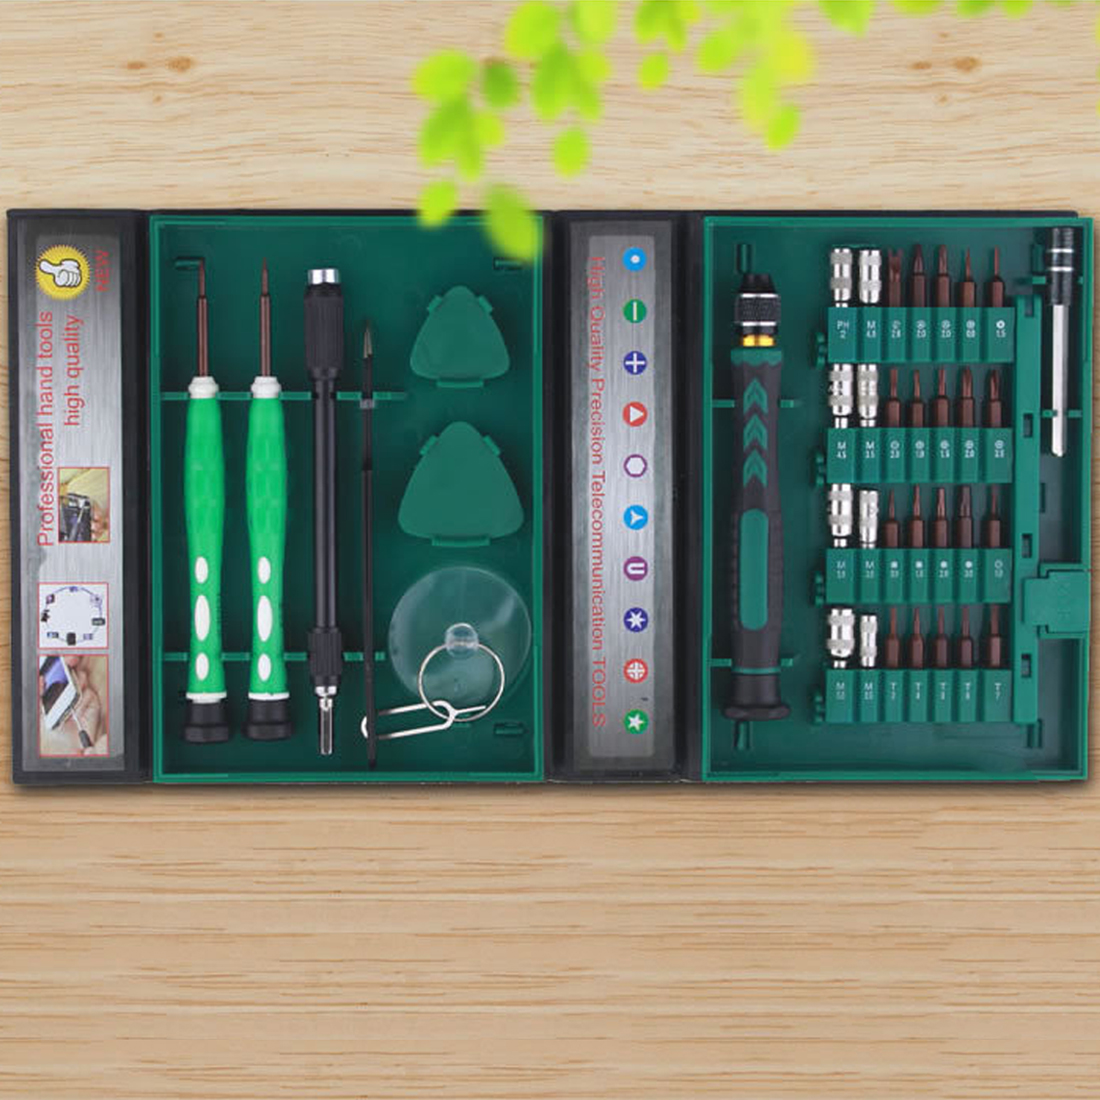 Precision Repair Tools Kit S2 Alloy Steel Material Tool 38 in 1 Screwdriver Set for Cell Phone iPhone for NotebookPrecision Repair Tools Kit S2 Alloy Steel Material Tool 38 in 1 Screwdriver Set for Cell Phone iPhone for Notebook